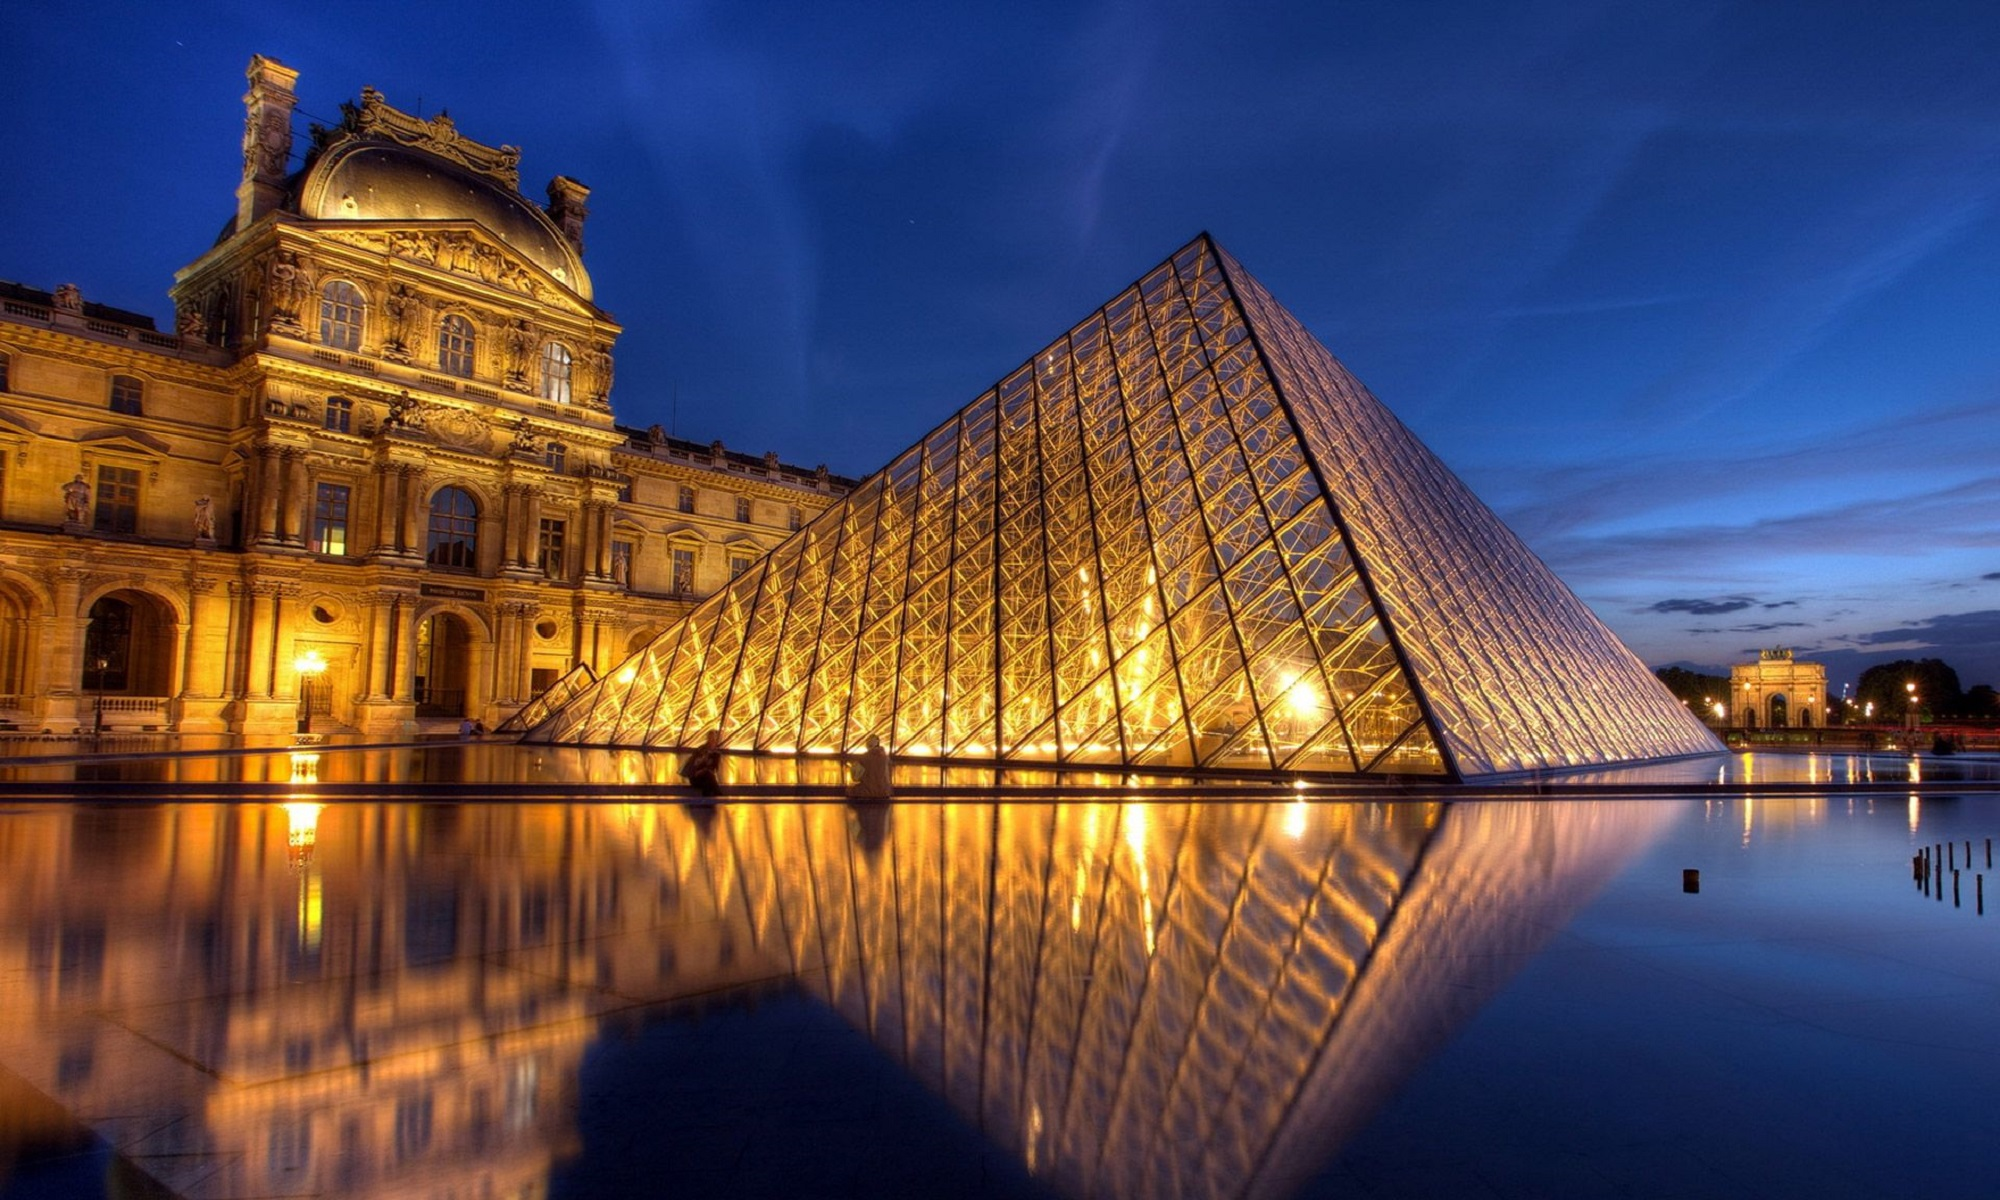 Louvre at night.